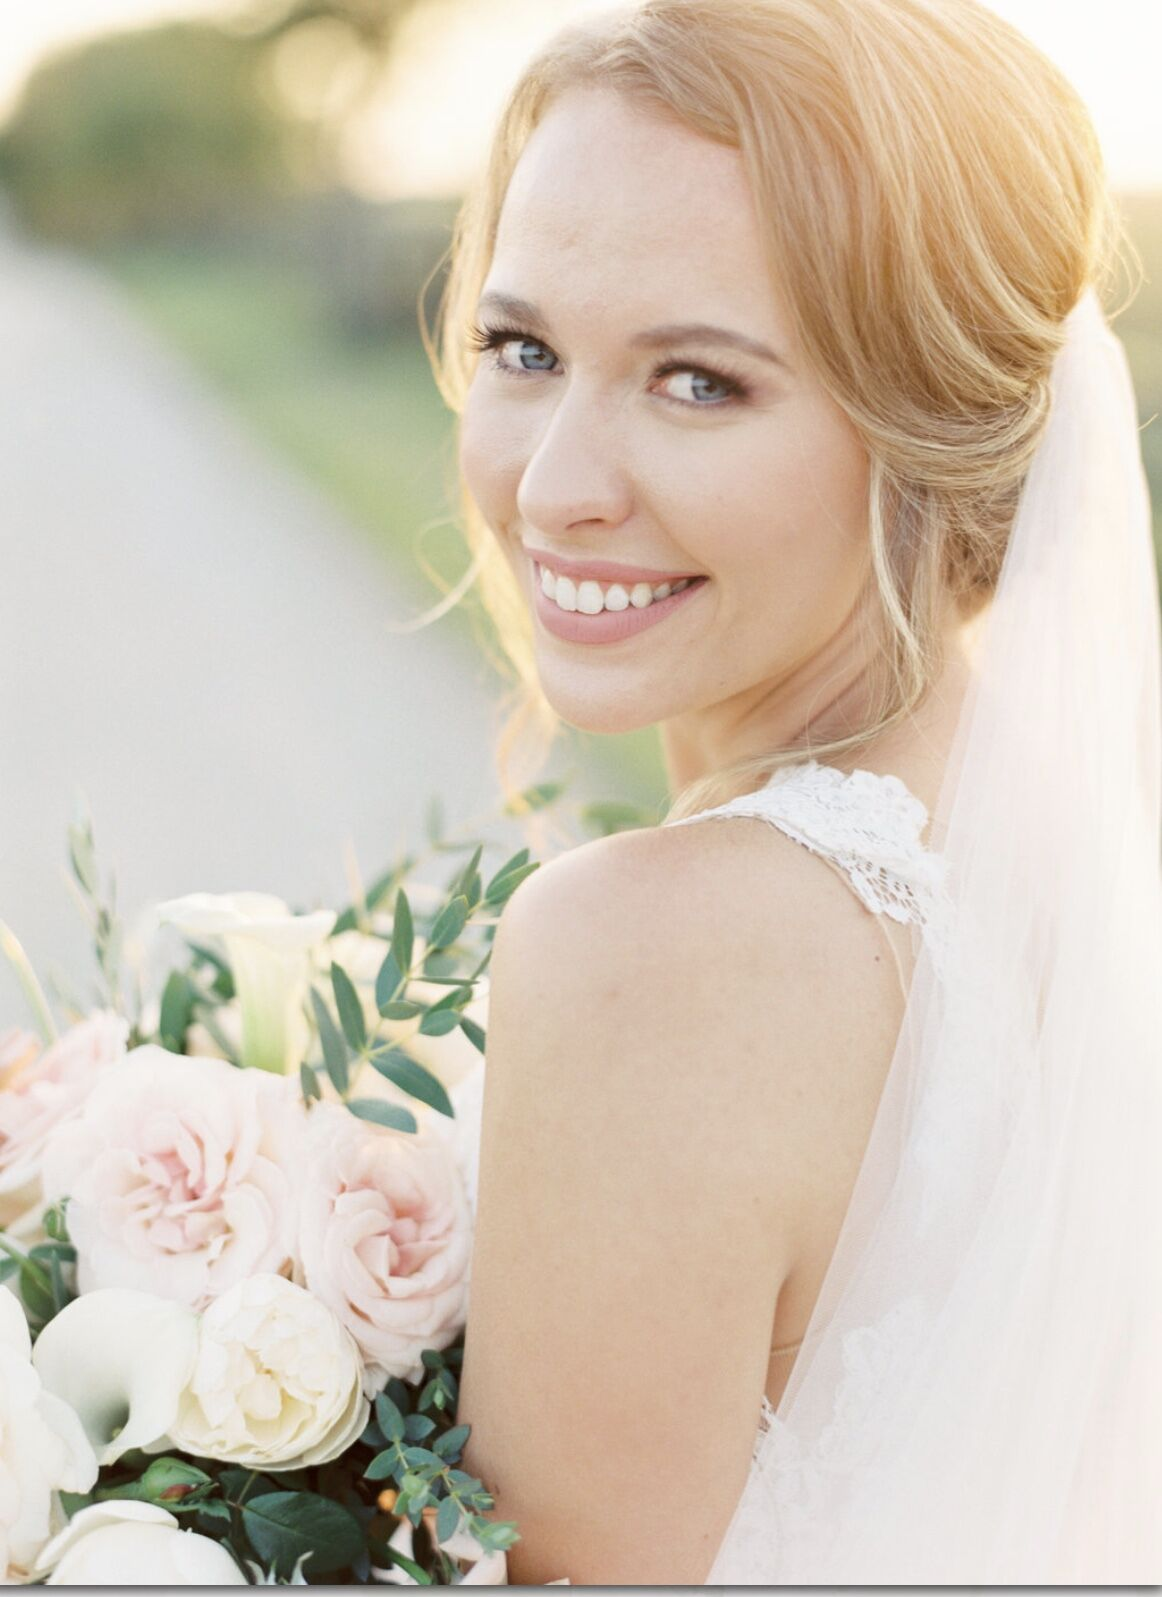 sunny hair and makeup artistry | beauty - tomball, tx